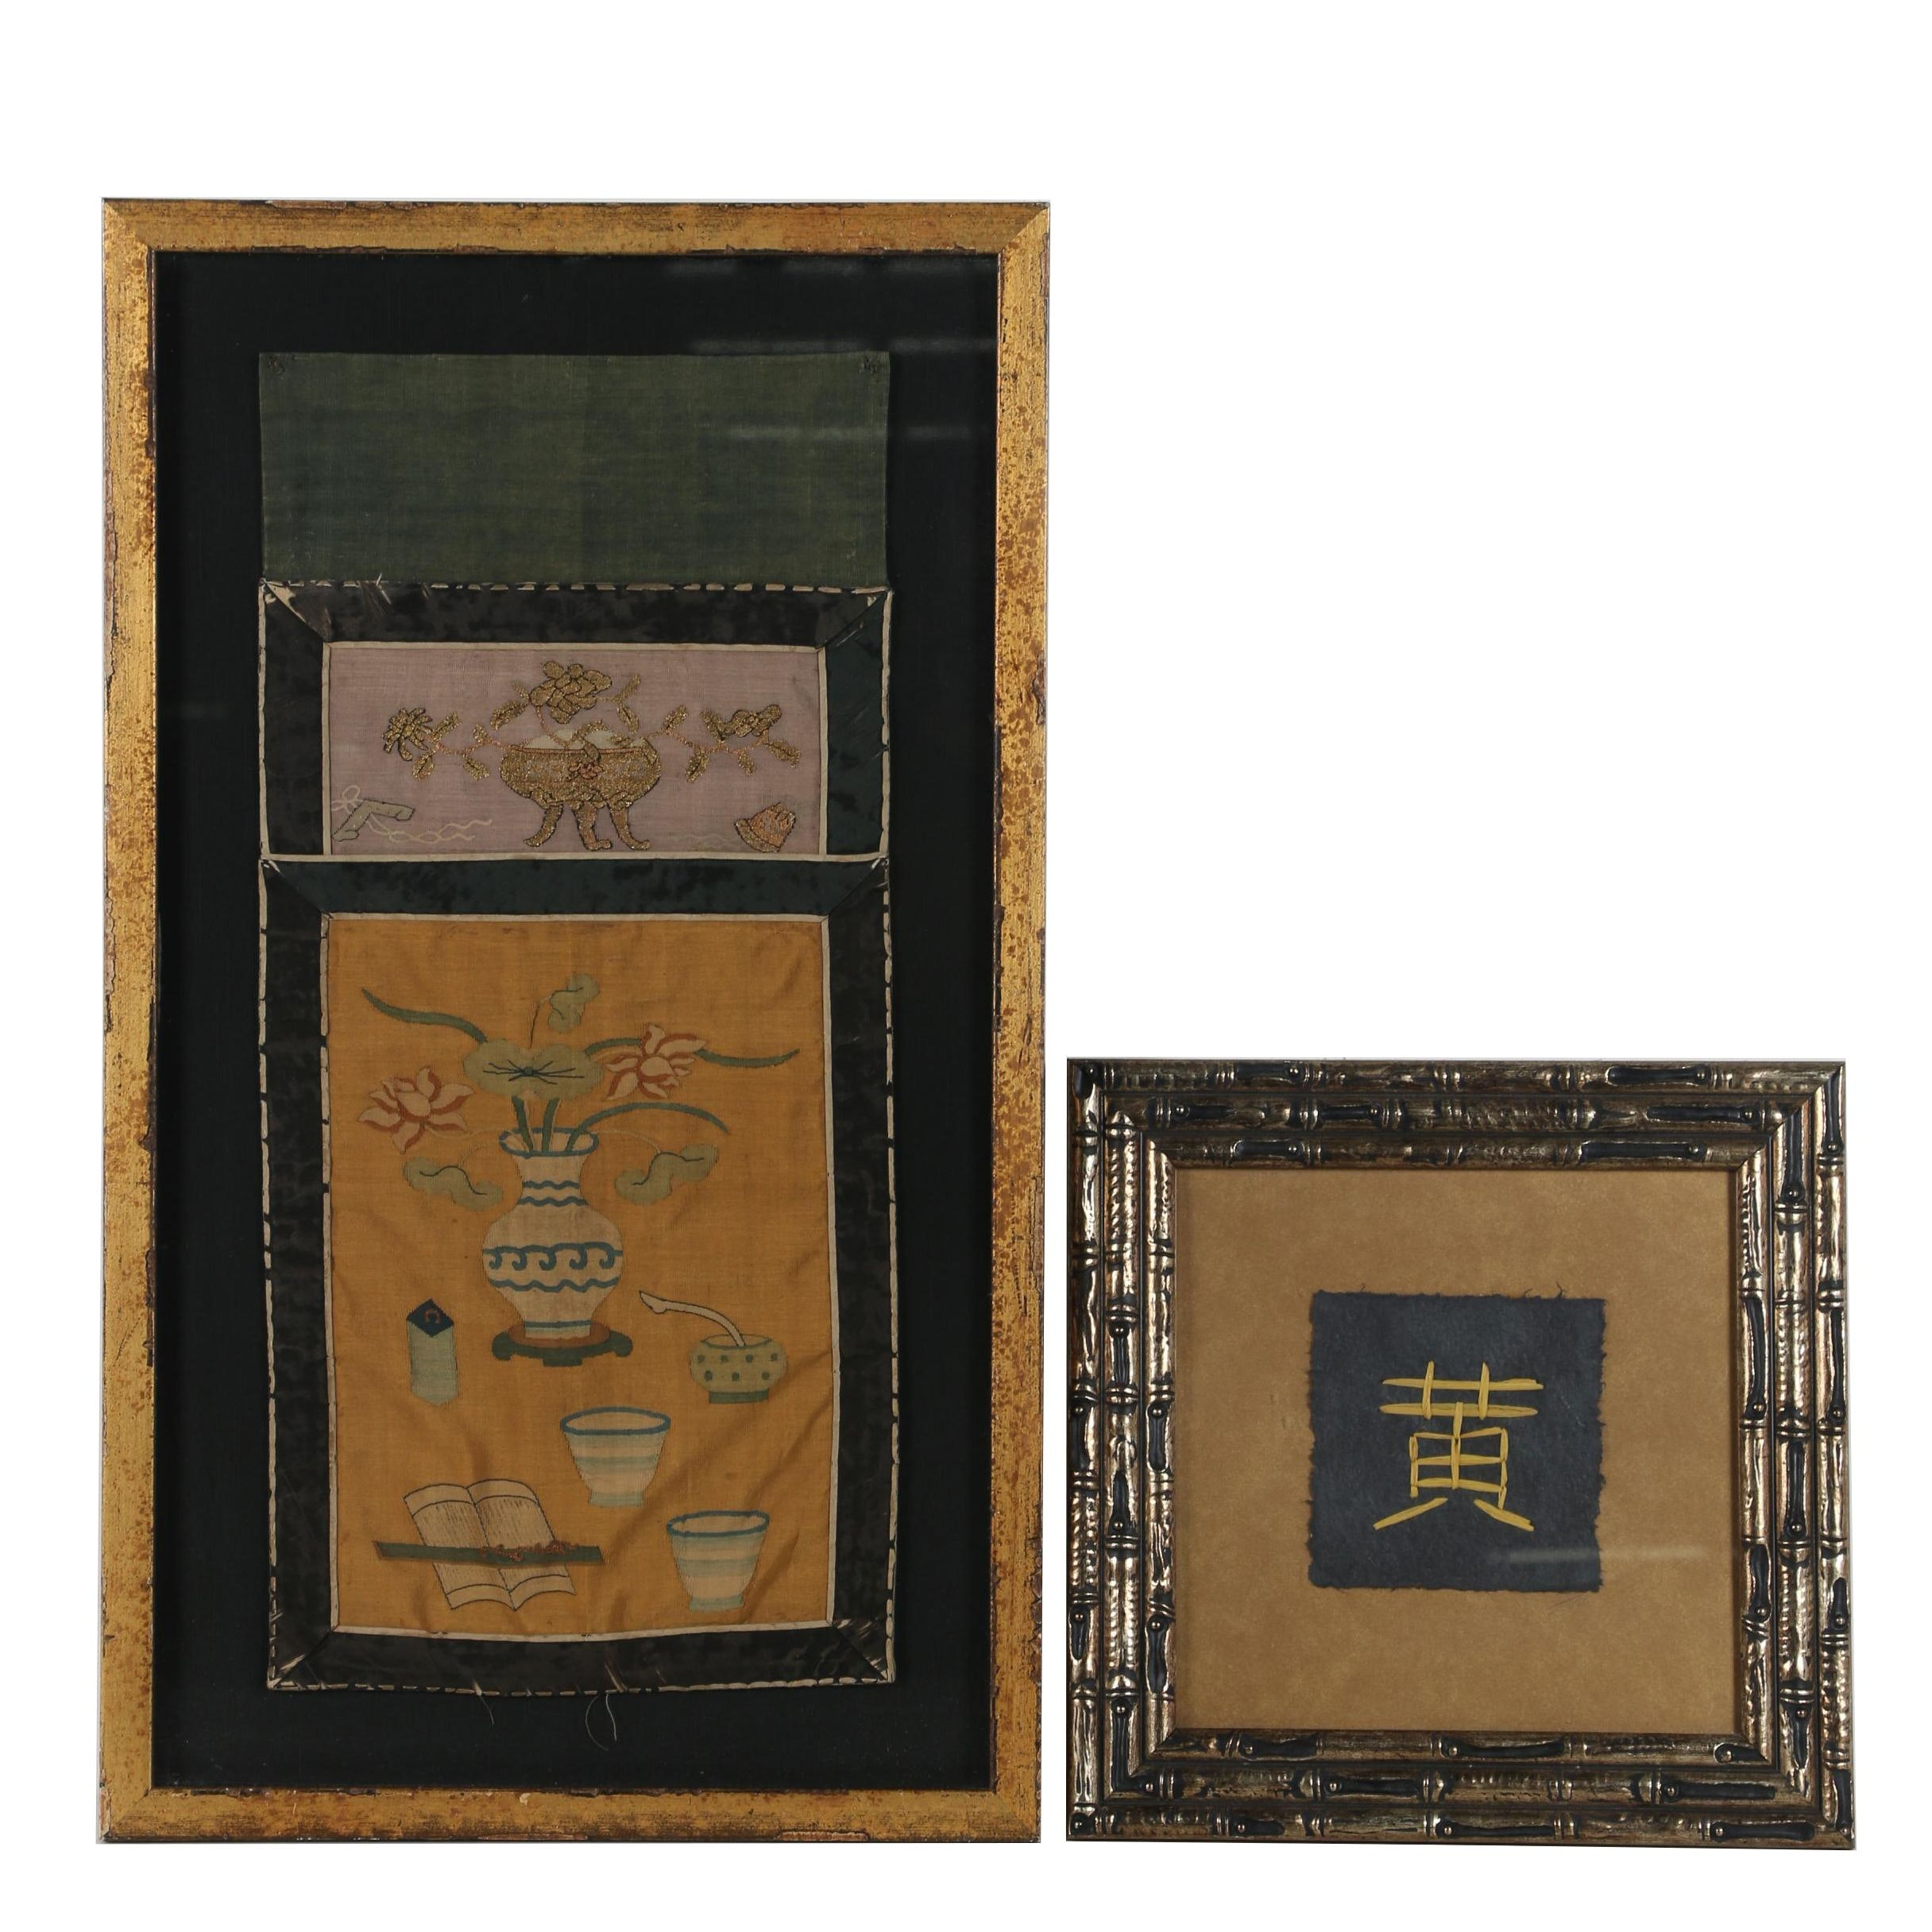 Chinese Hand-Stitched Textiles